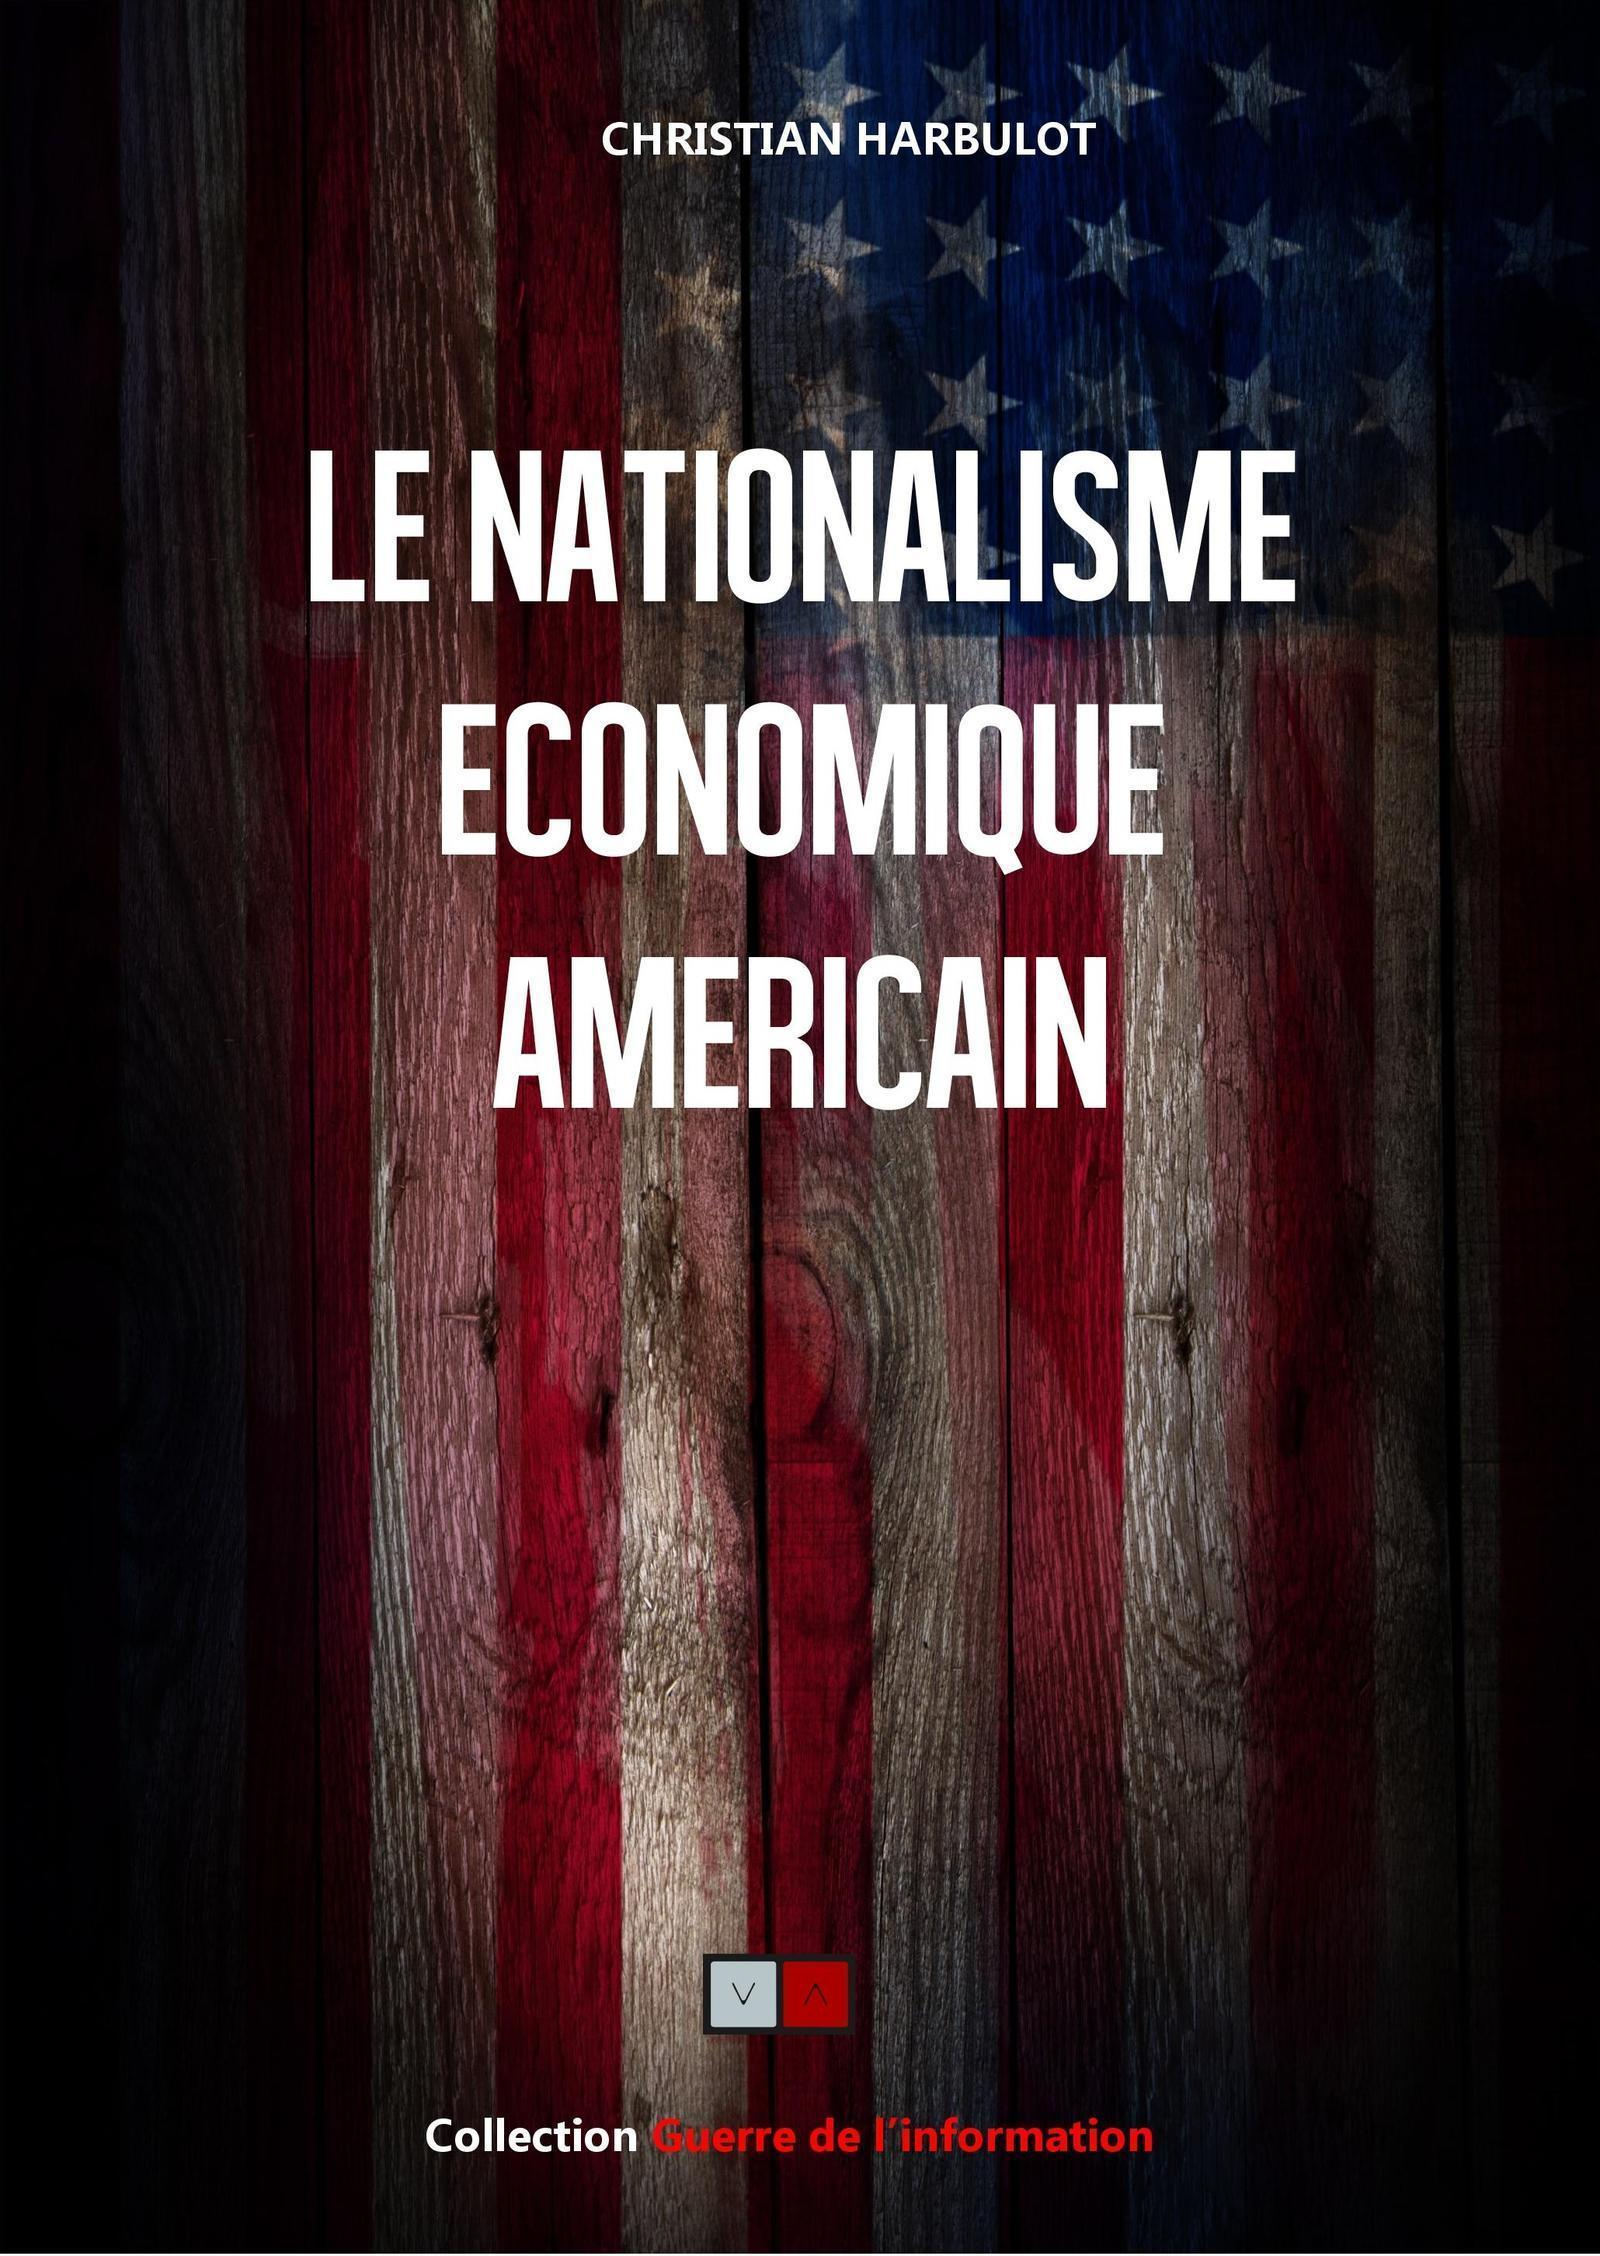 LE NATIONALISME ECONOMIQUE AMERICAIN